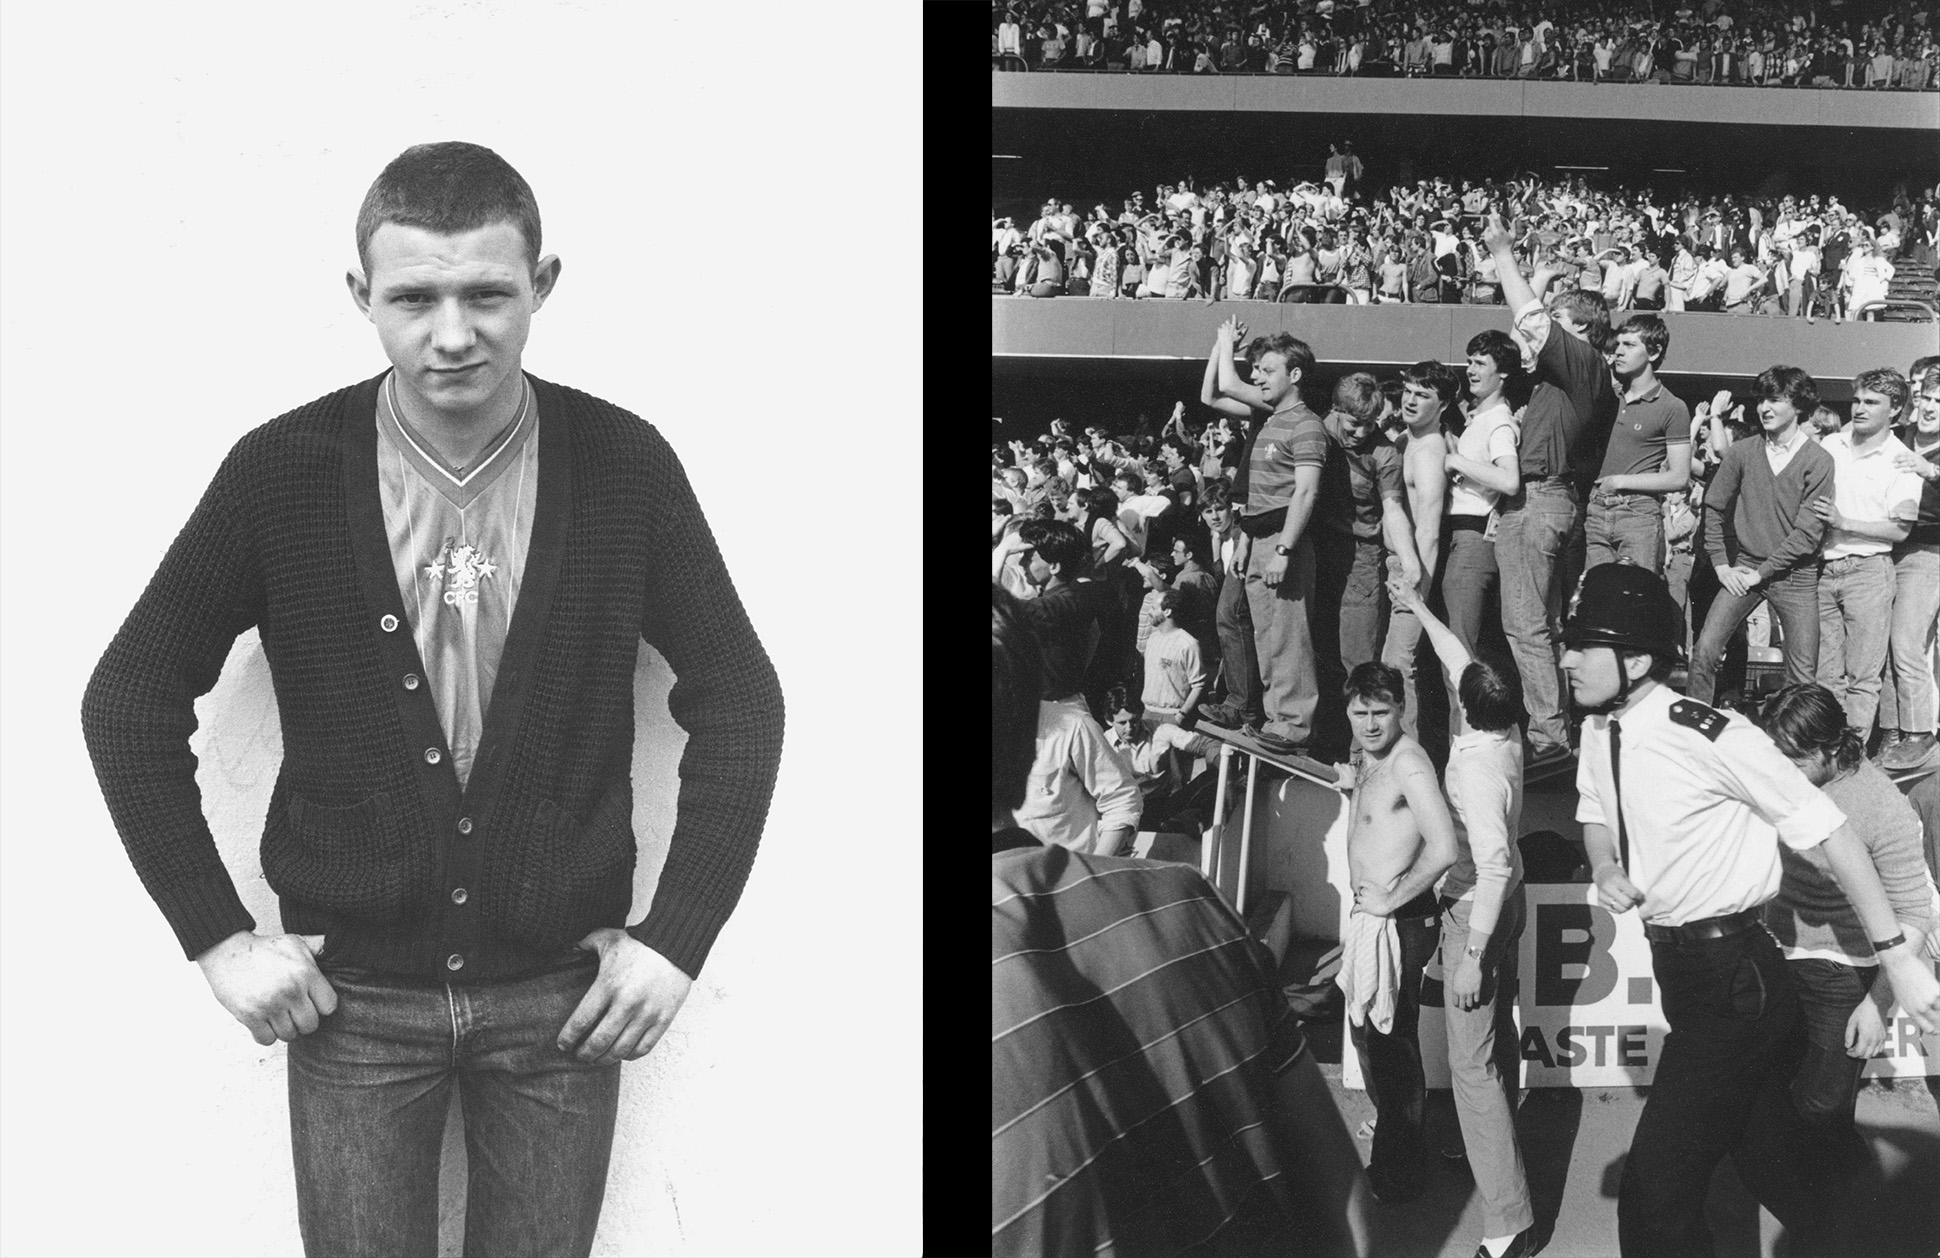 Chelsea football fan wearing a strip and knitted cardigan, and casuals in the football terraces, London, 1980s by John Ingledew